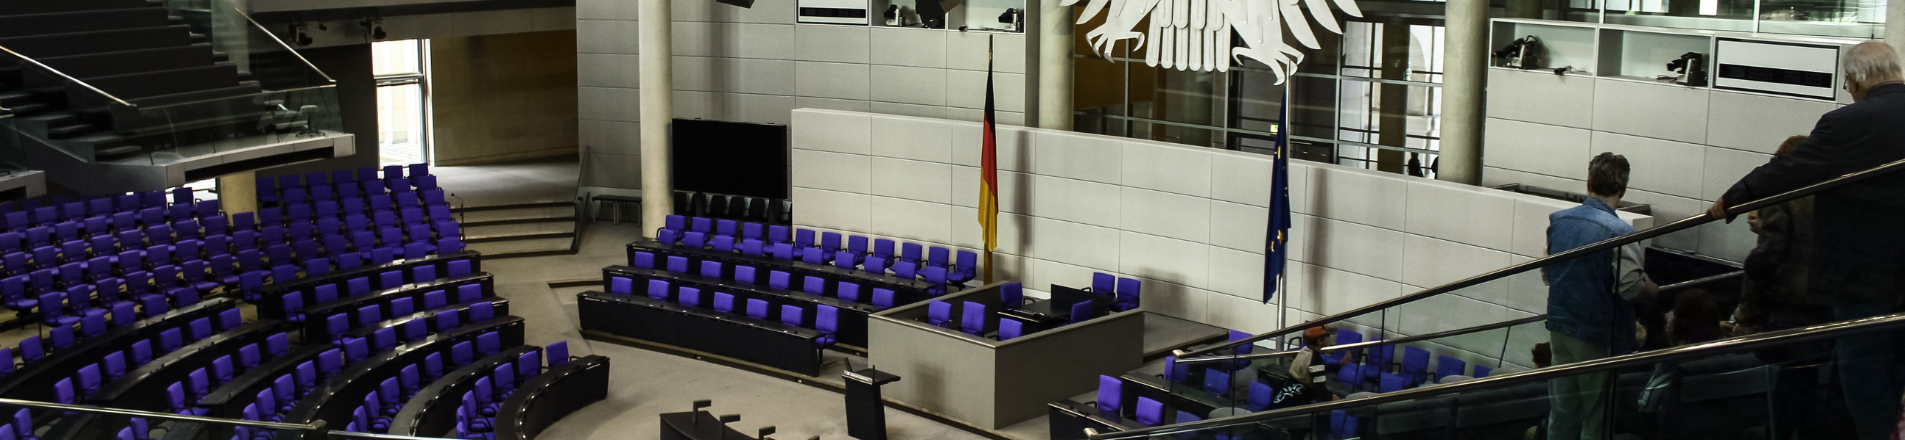 Image of inside a government building